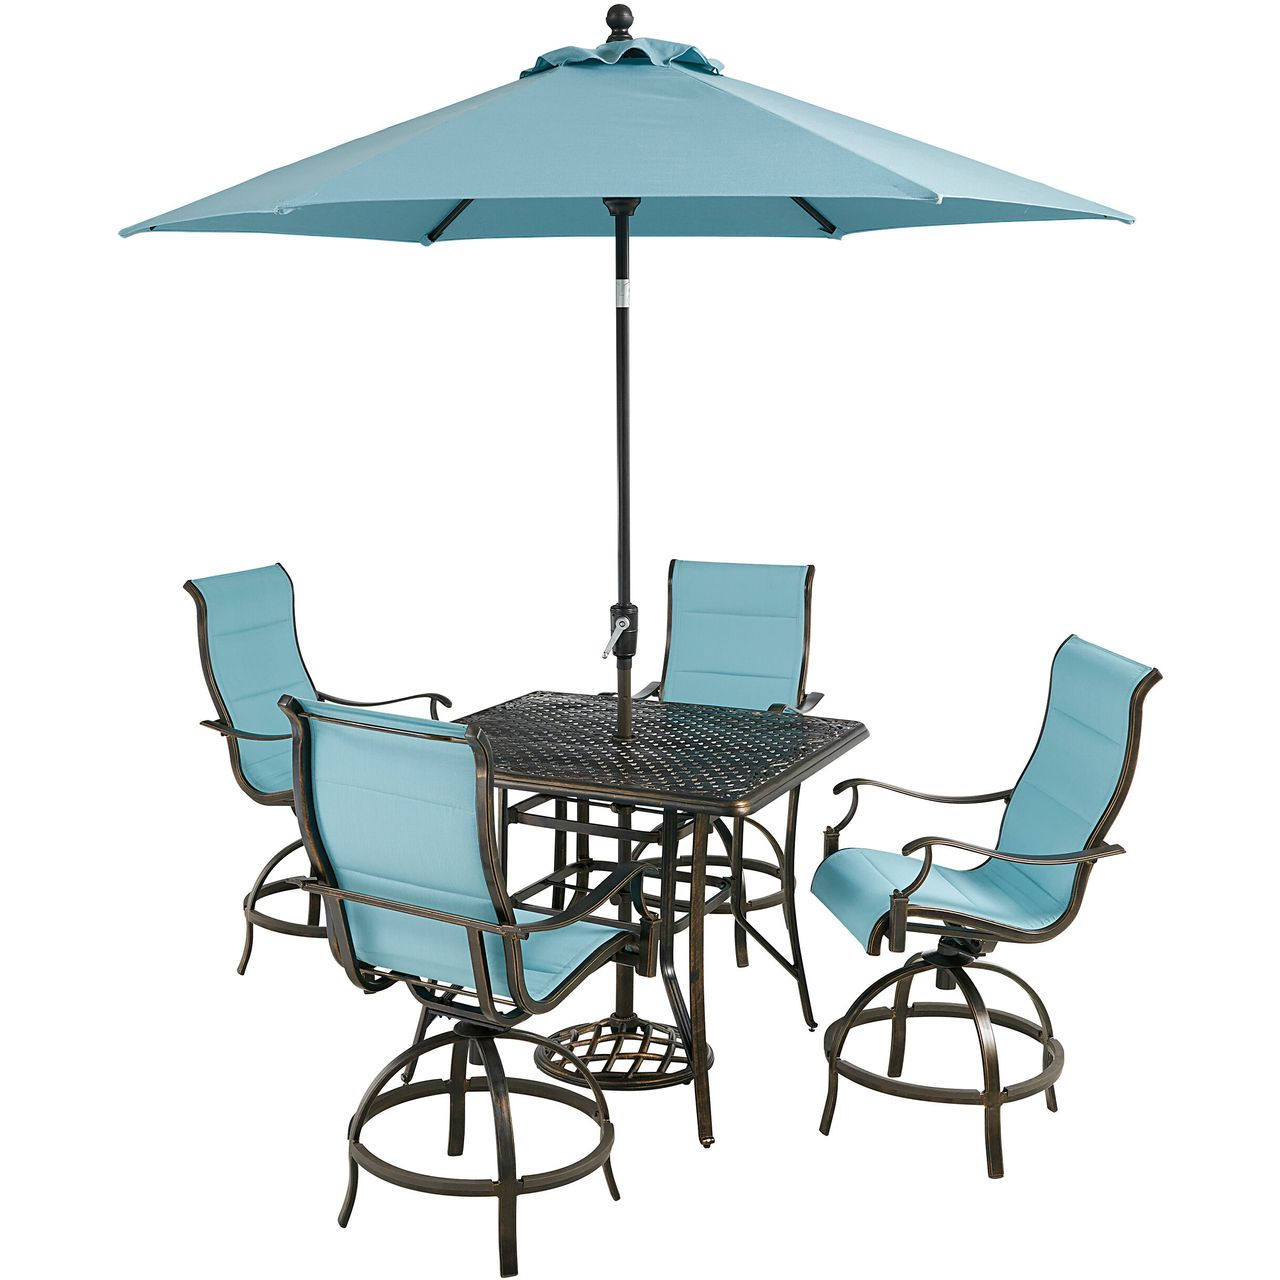 """Hanover Traditions 5-Pc 42"""" High-Dining Set With Blue Chairs/Umbrella"""